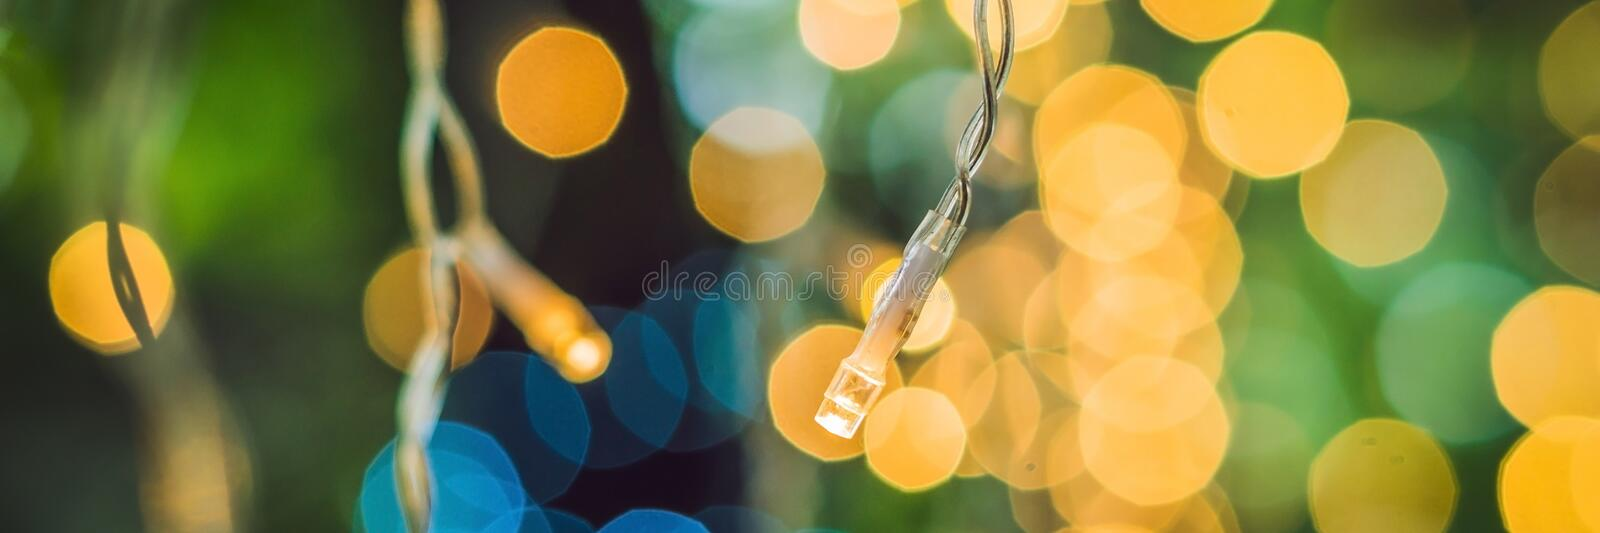 BANNER LED lights garland, colorful light bulbs on a bokeh background Long Format. BANNER LED lights garland, colorful light bulbs on a bokeh background. Long royalty free stock photography